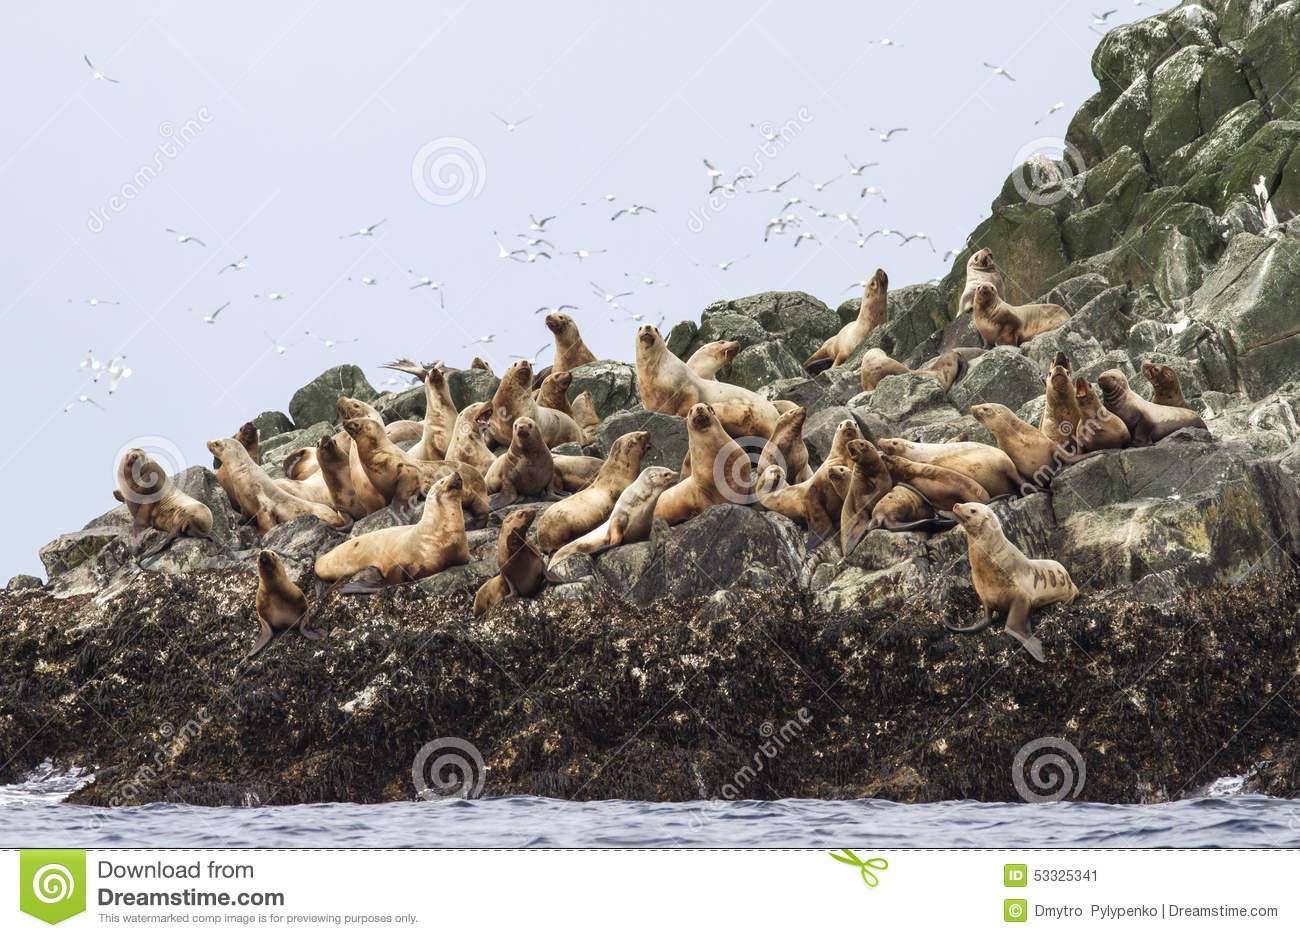 Steller sea lion rookery on cliffs of the island